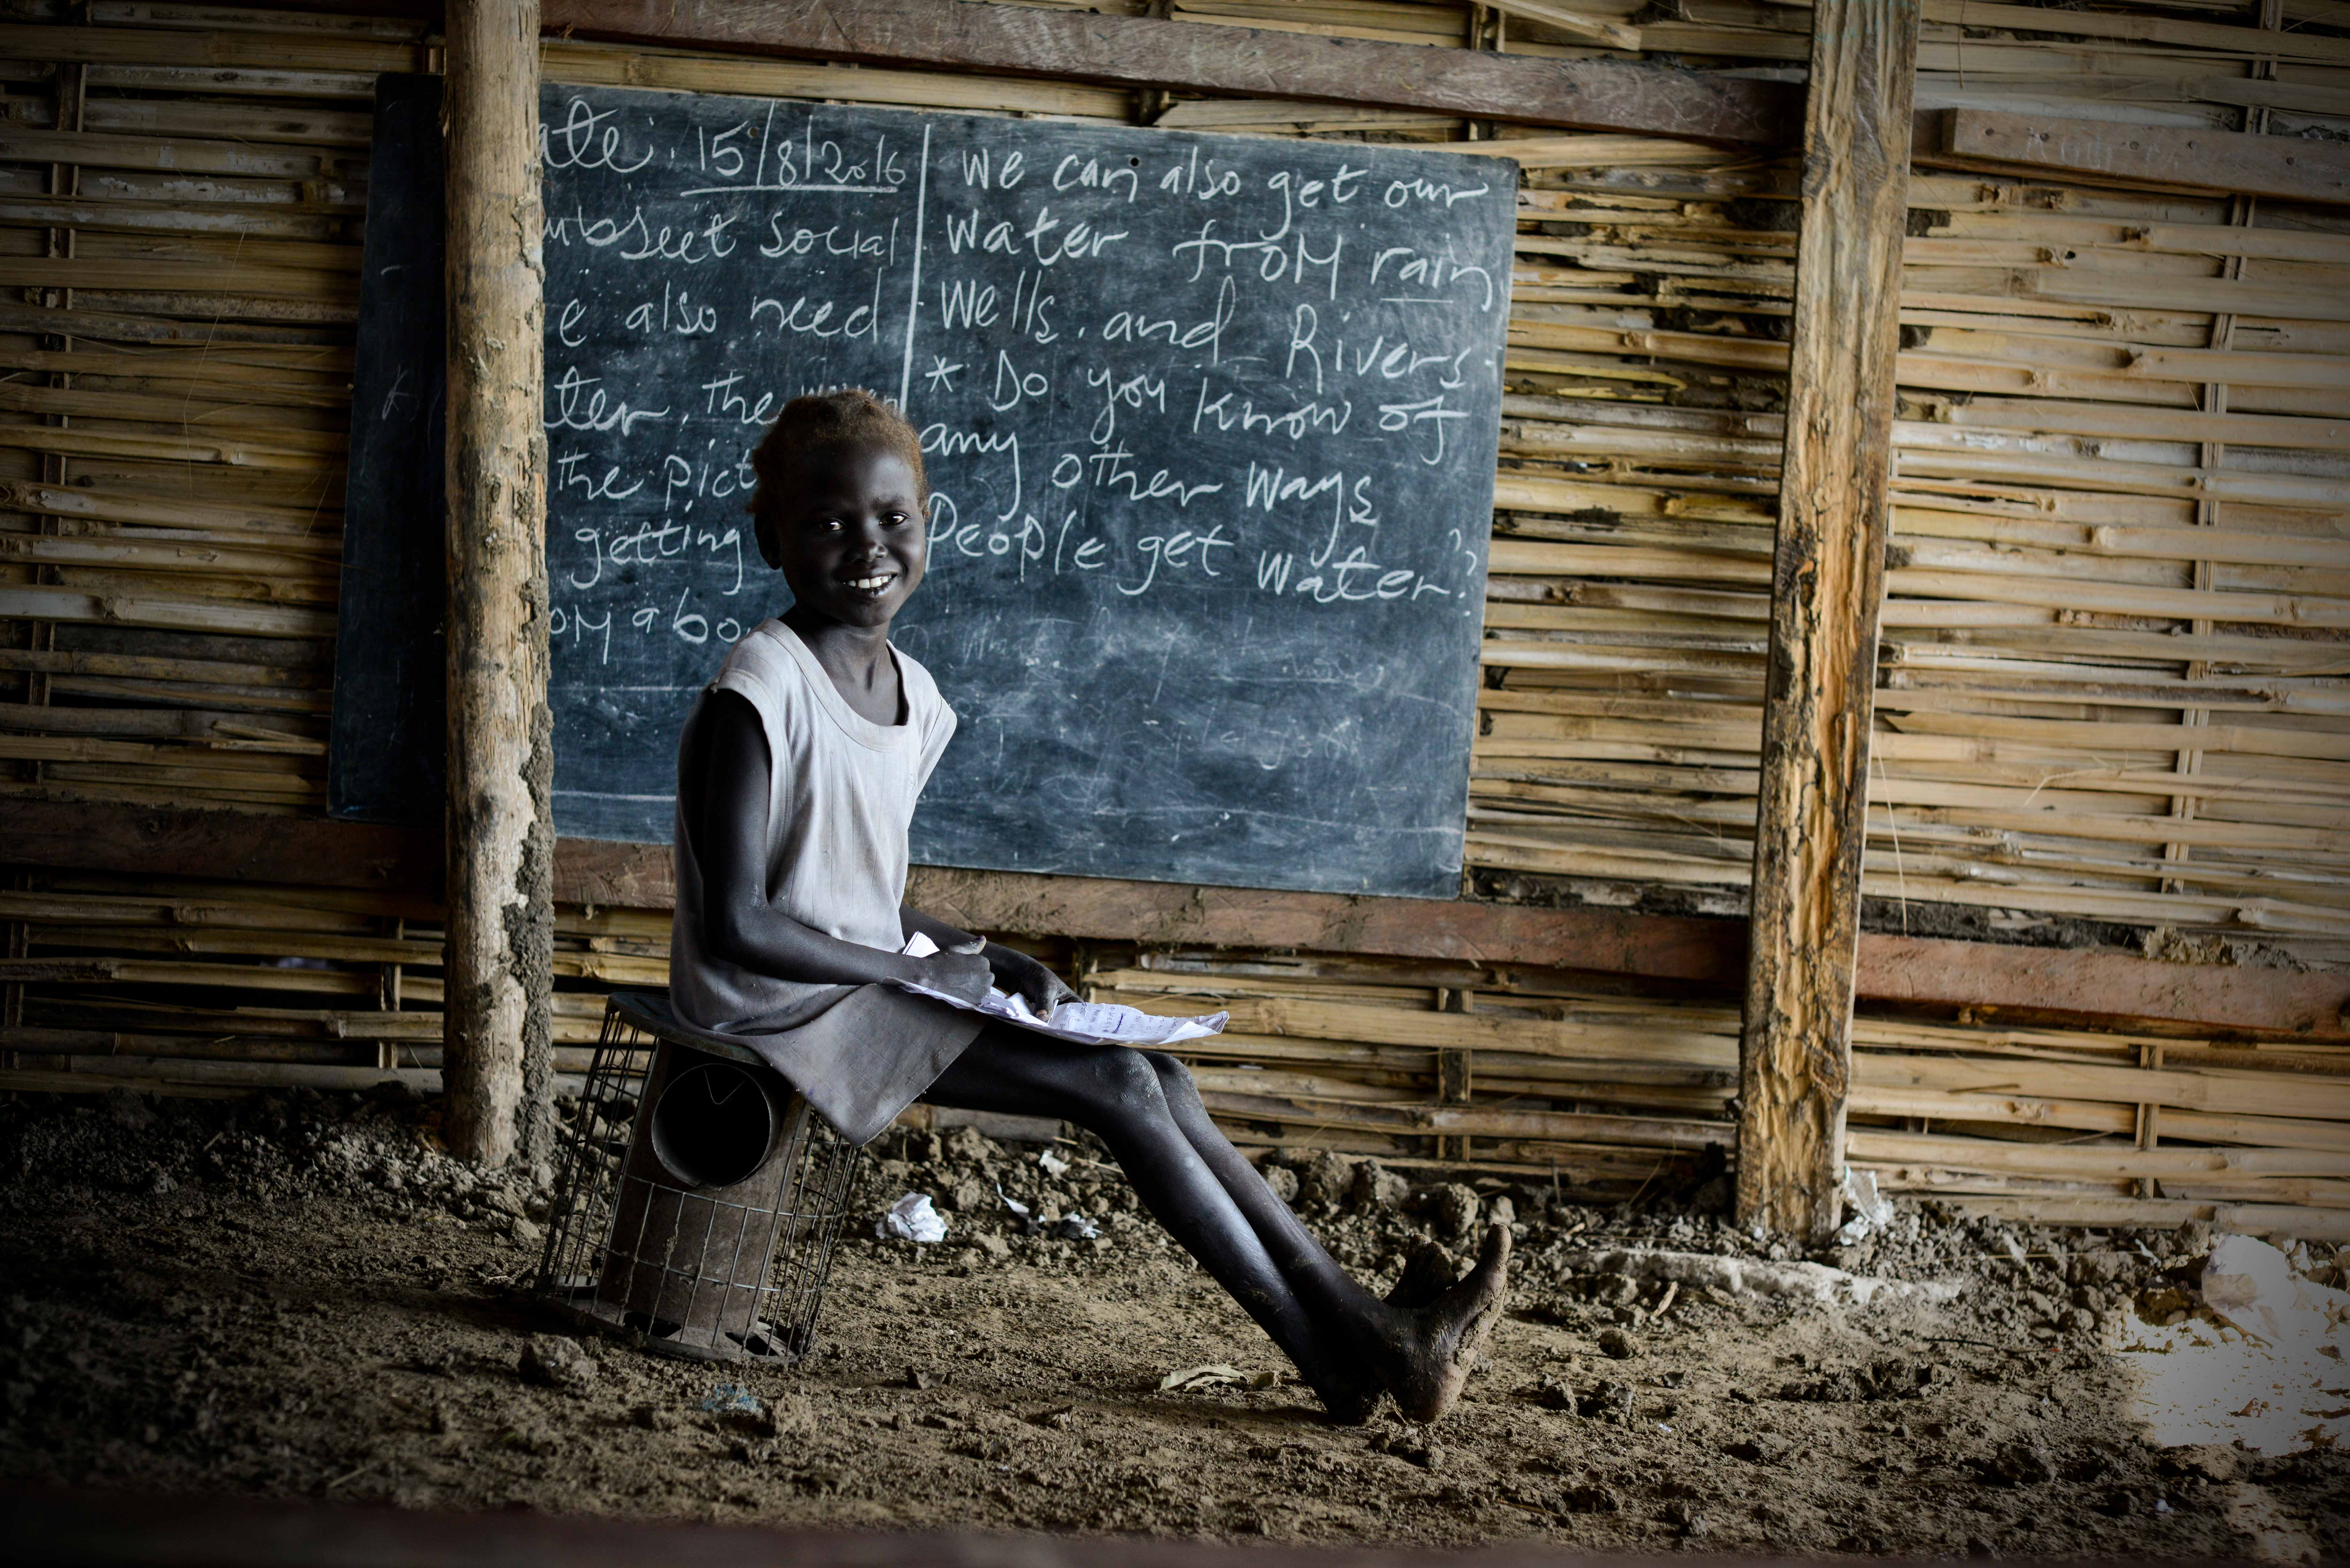 Little girl sits on a cookstove, with a notebook on her lap and a blackboard in the background